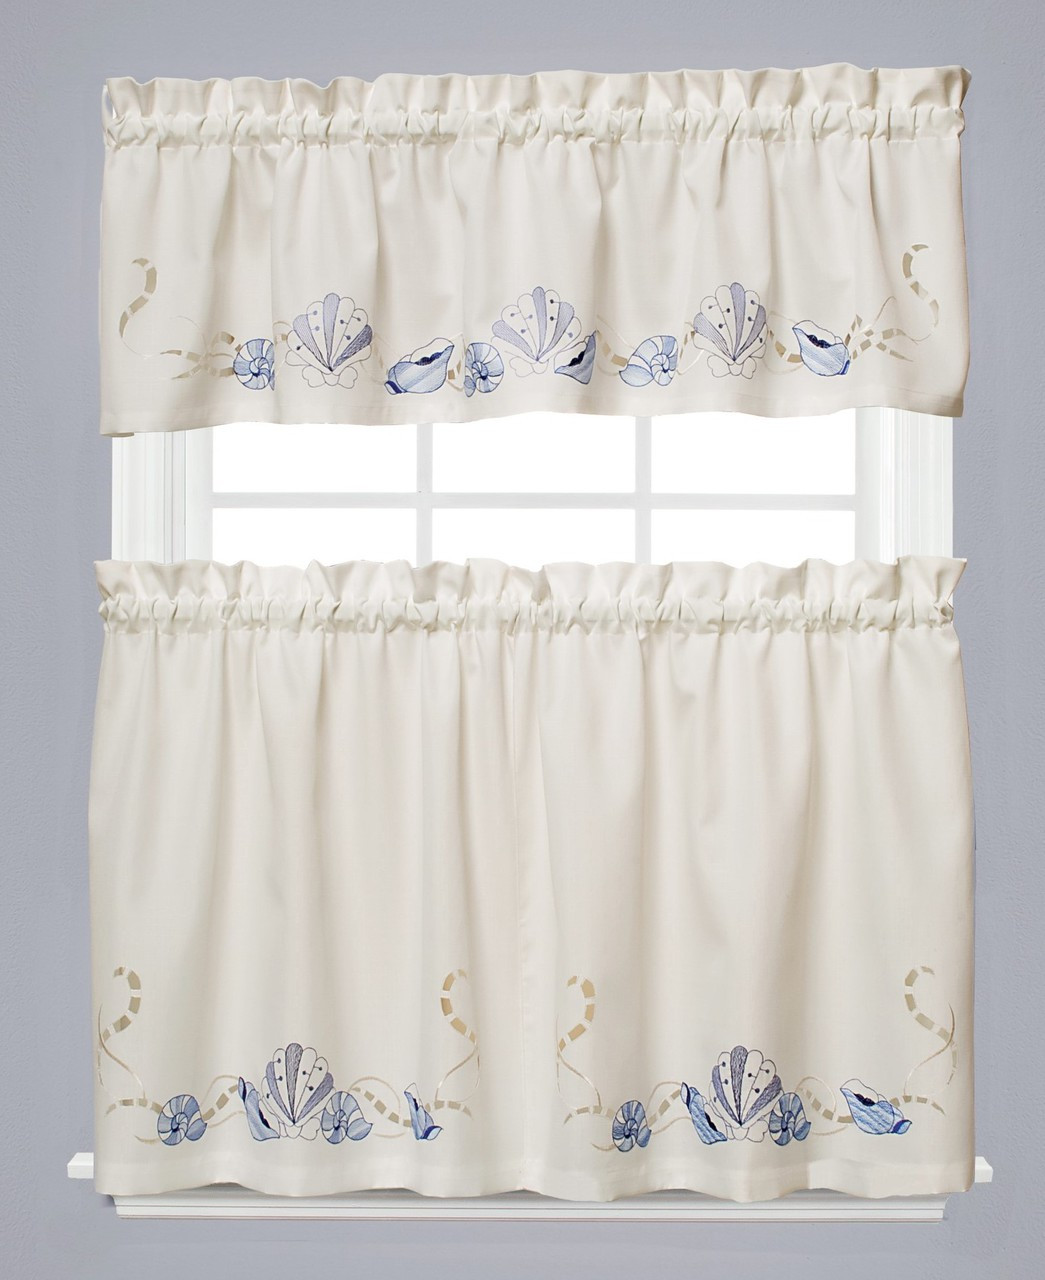 New Kitchen Curtains For Less: Seabreeze Embroidered Kitchen Curtain